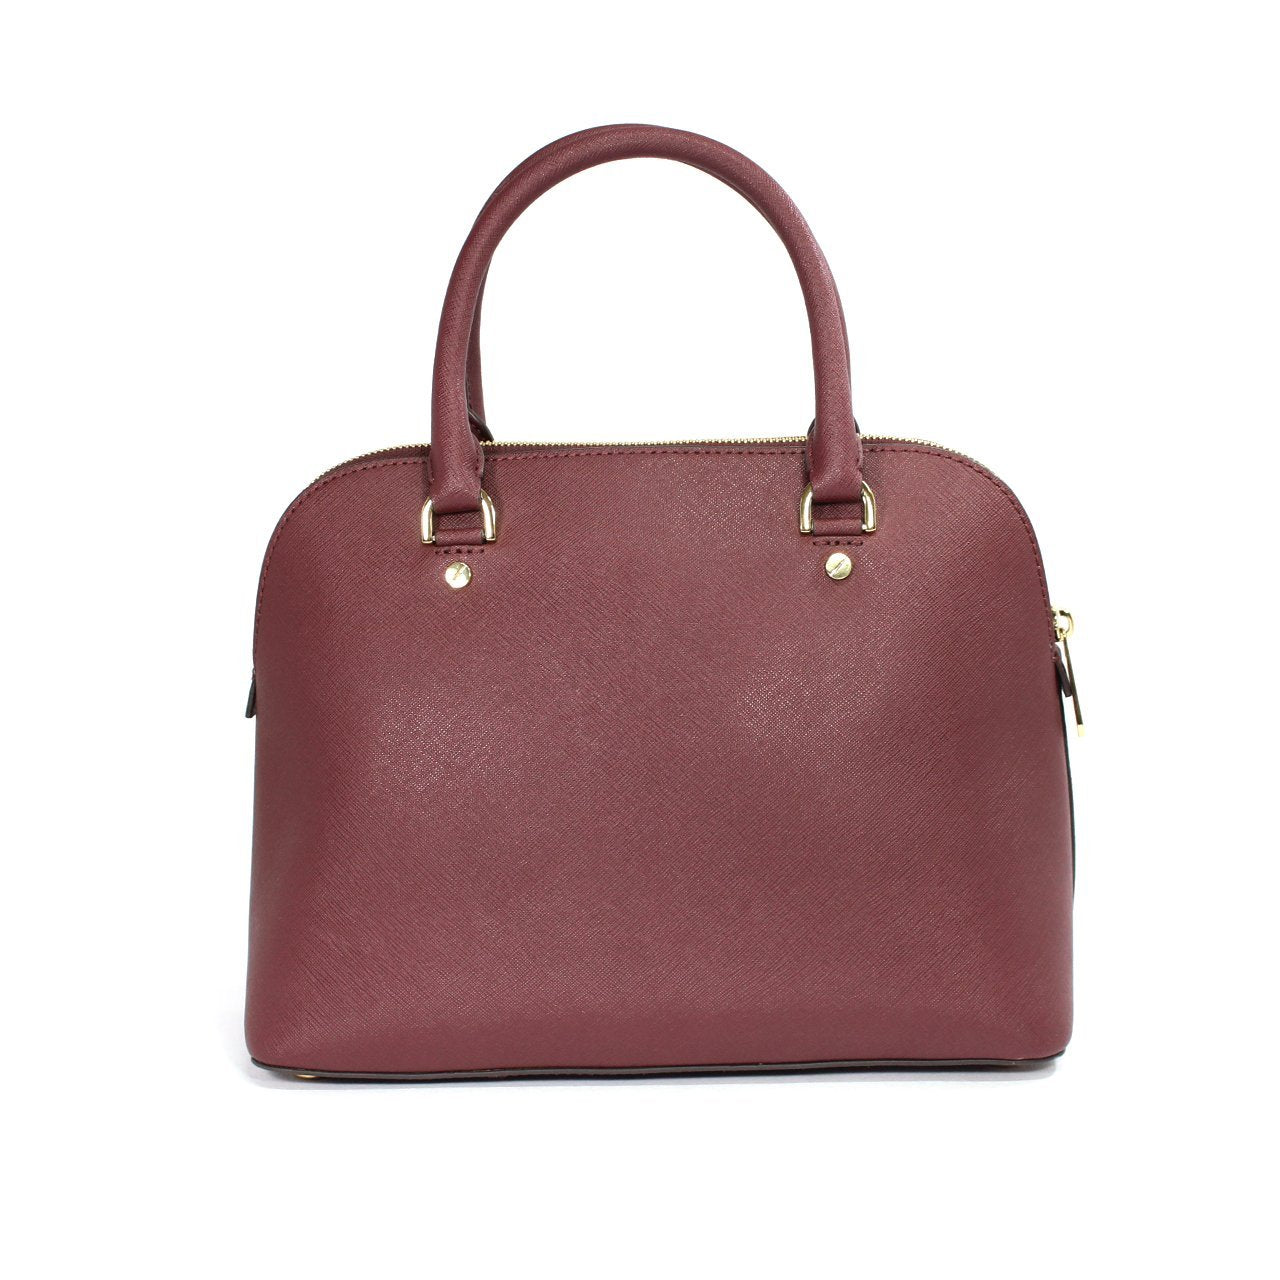 Michael Kors Cindy Dome Merlot Satchel Bag